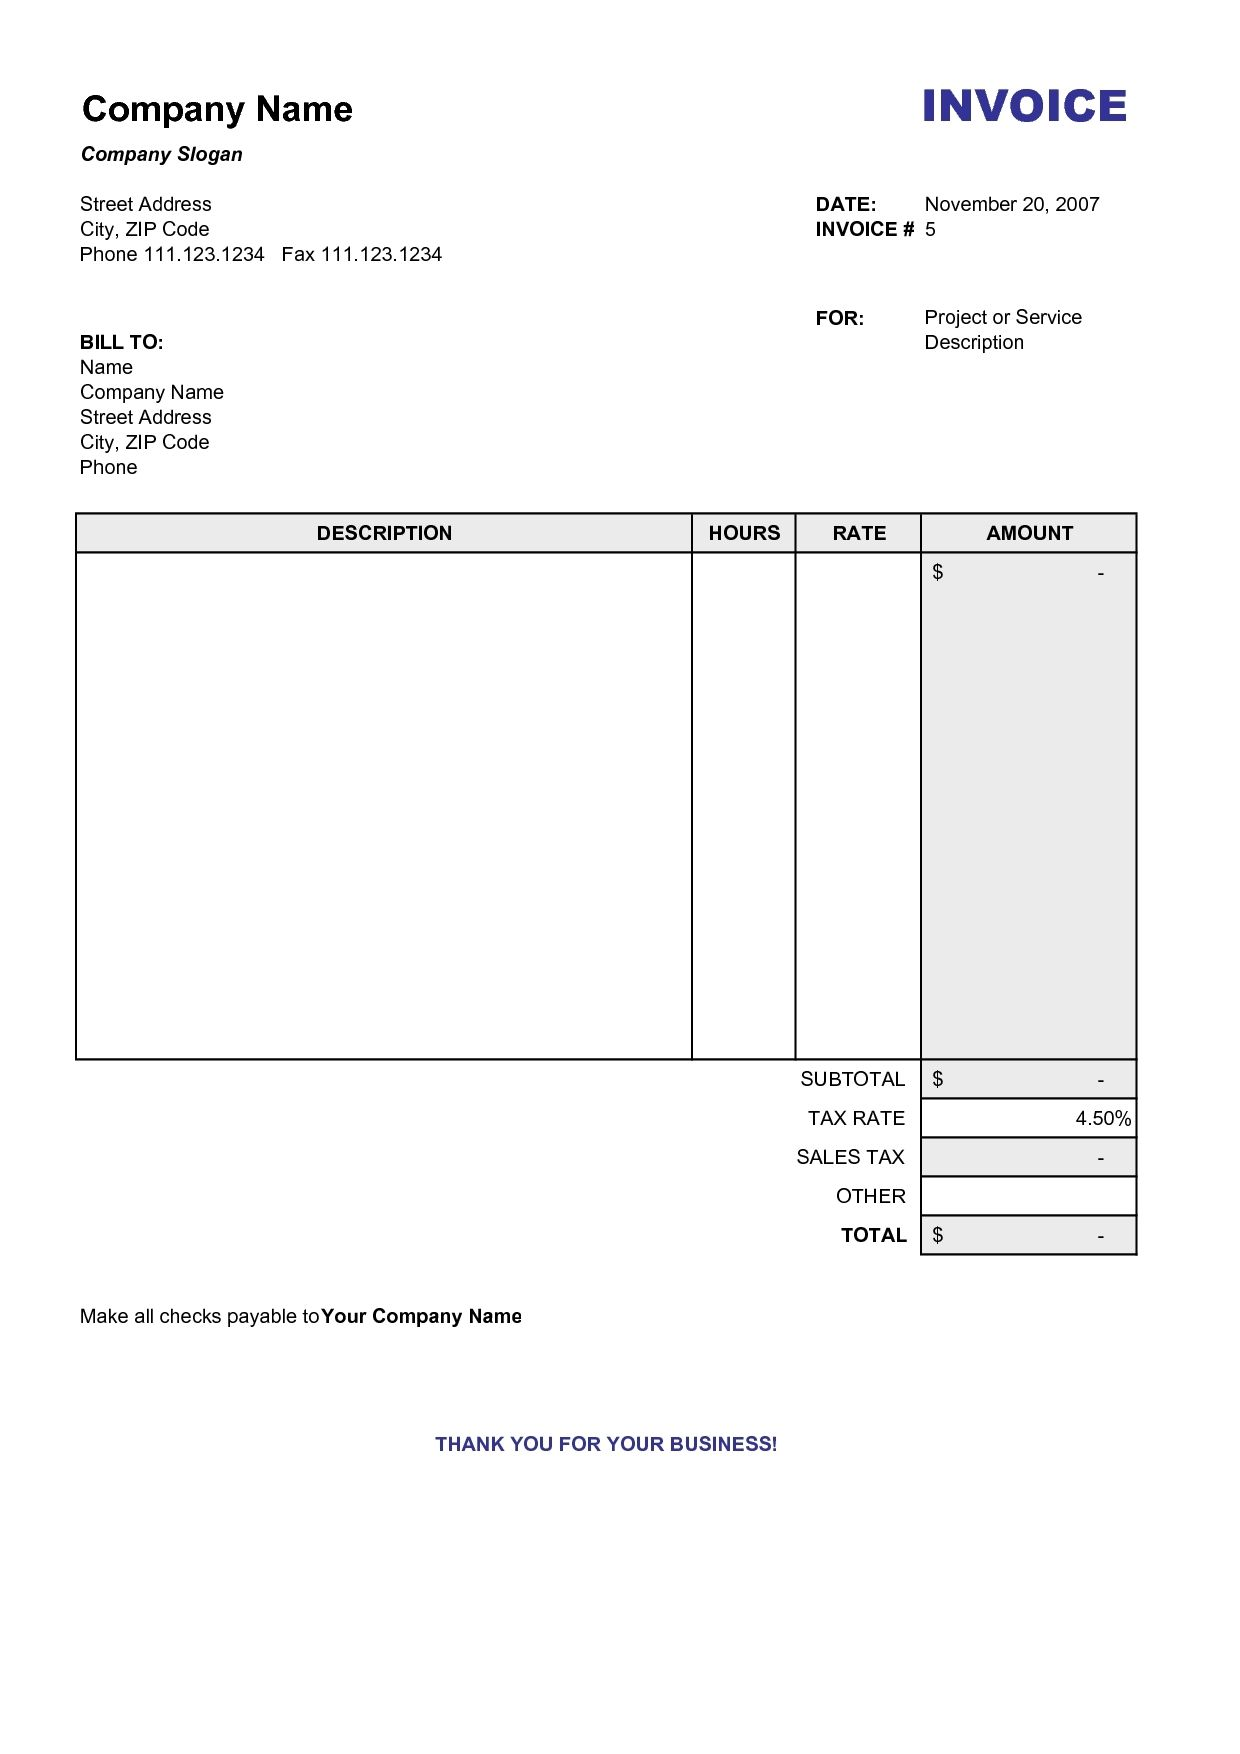 Copy Of A Blank Invoice Invoice Template Free Copy Of Blank - How to create an invoice in word for service business